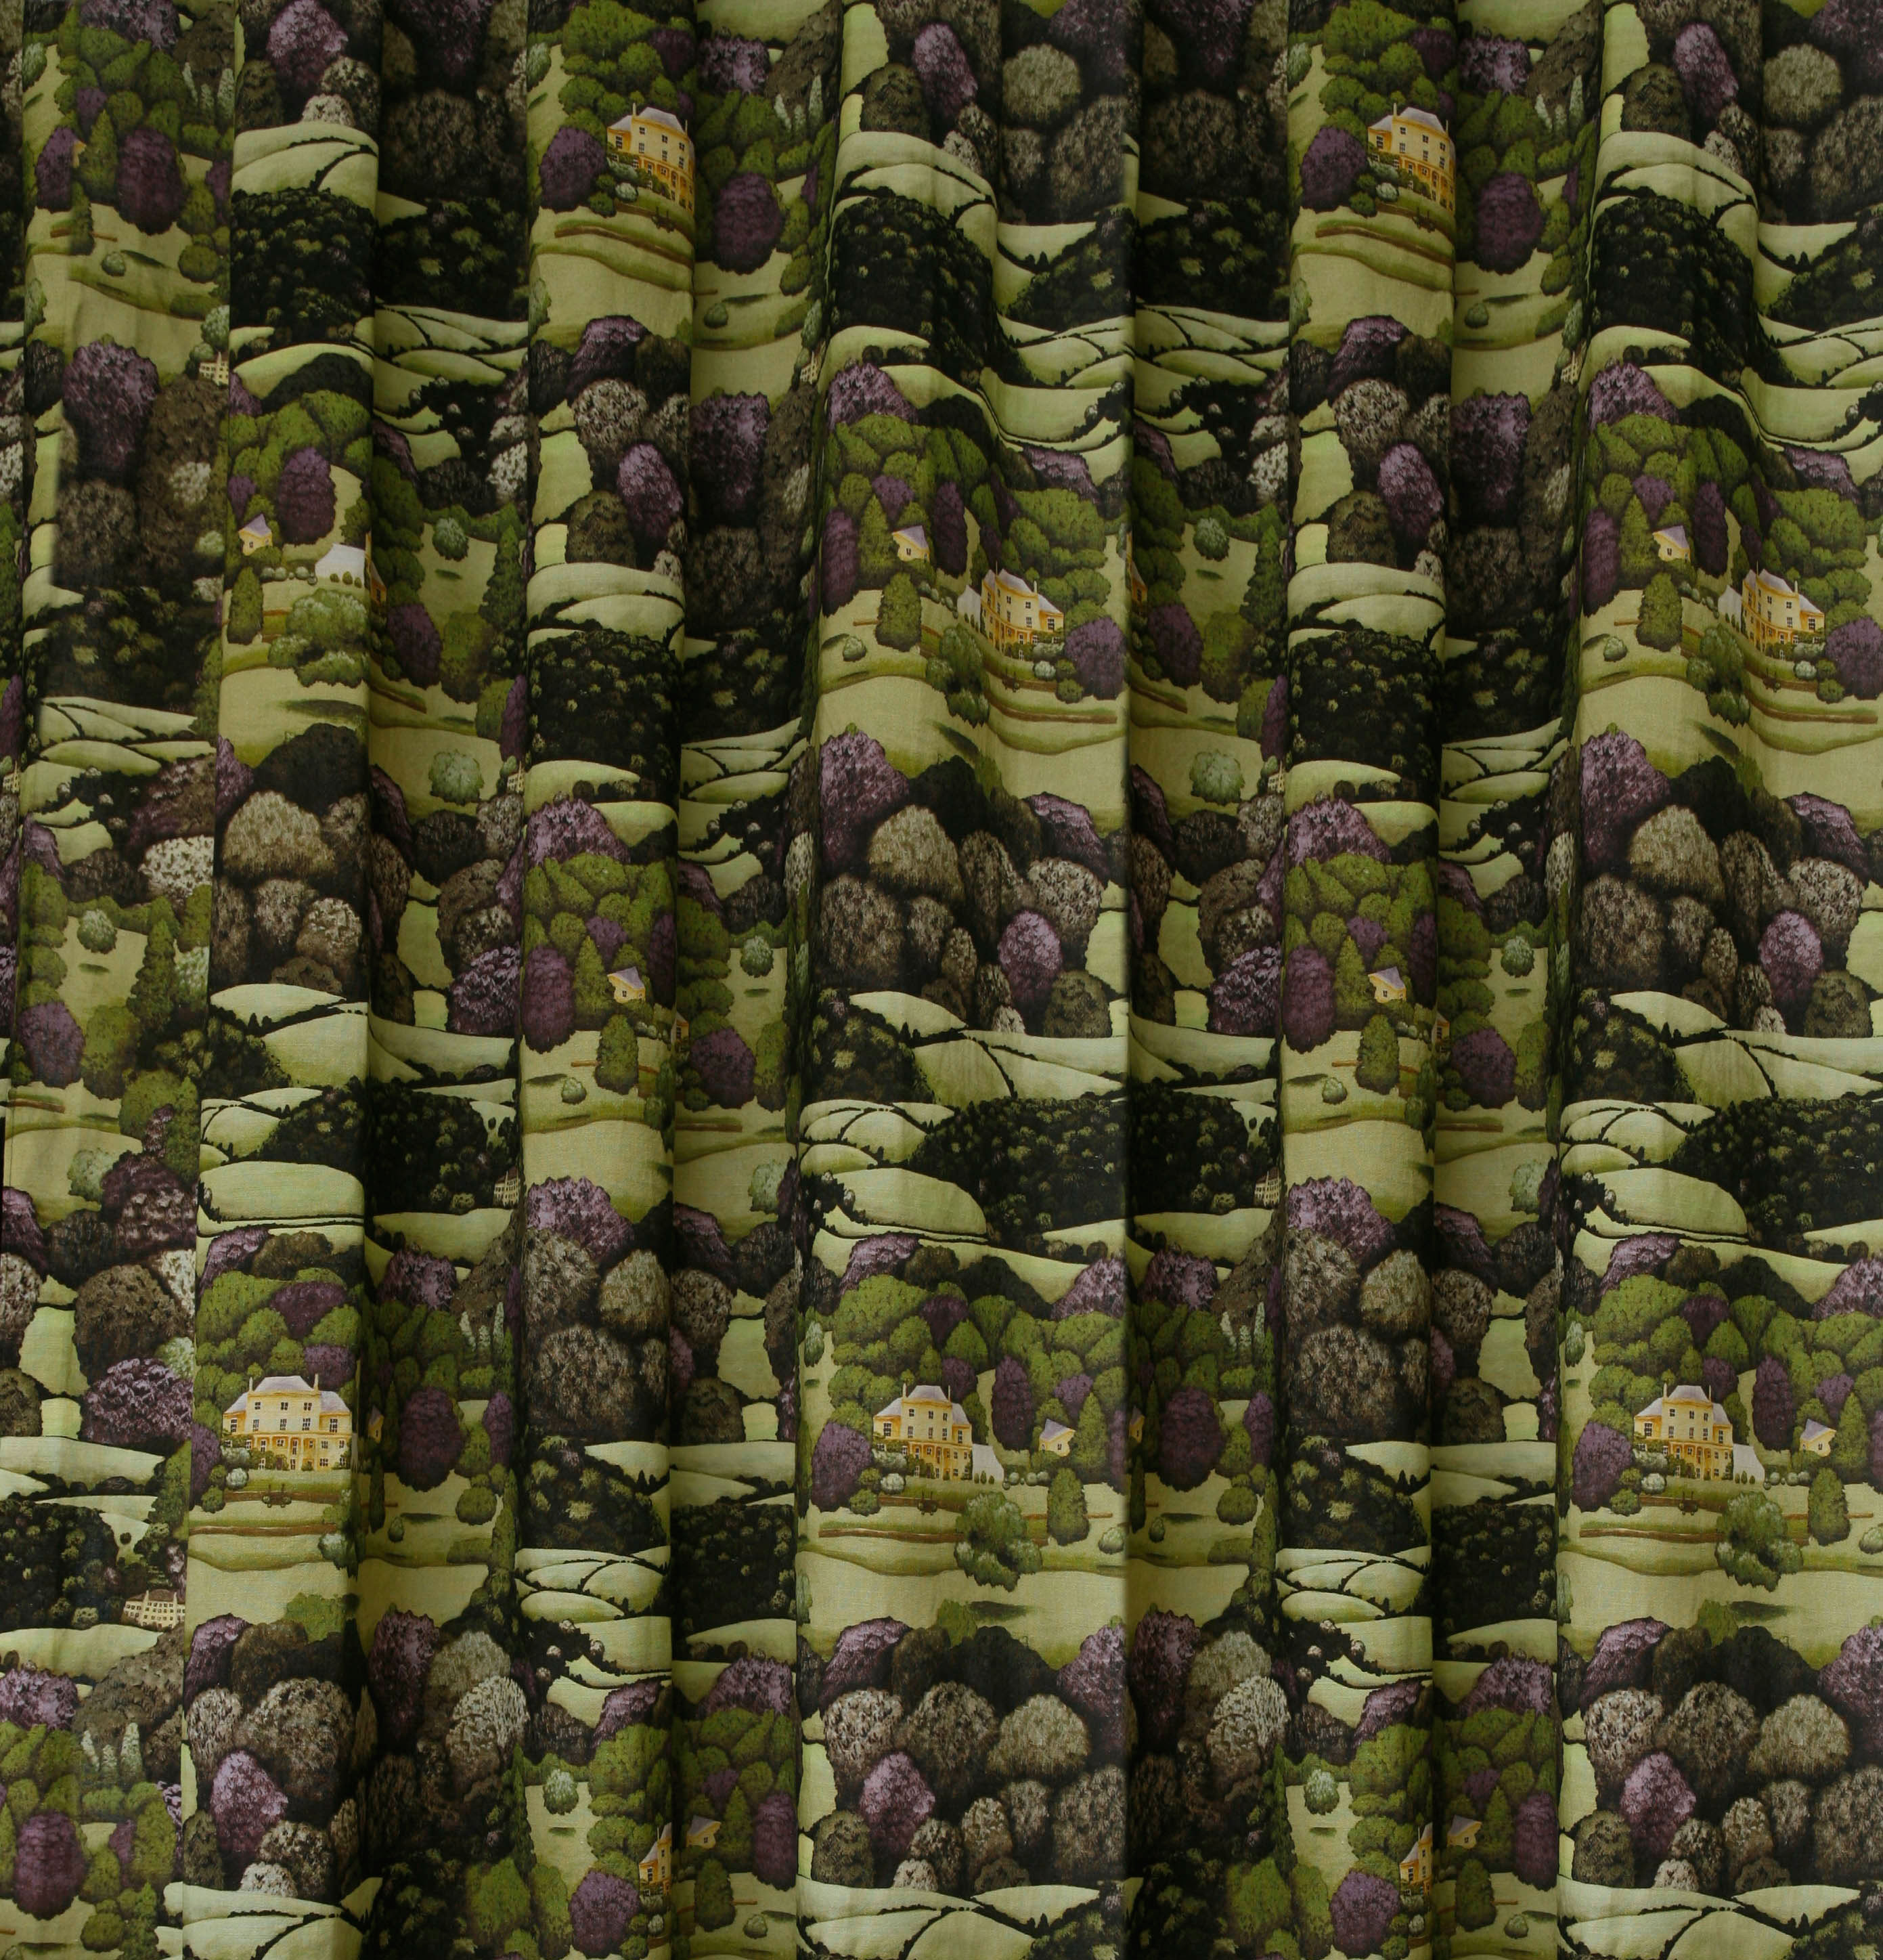 Surreal by Danielle Affleck, Printed Textile & Surface Designer